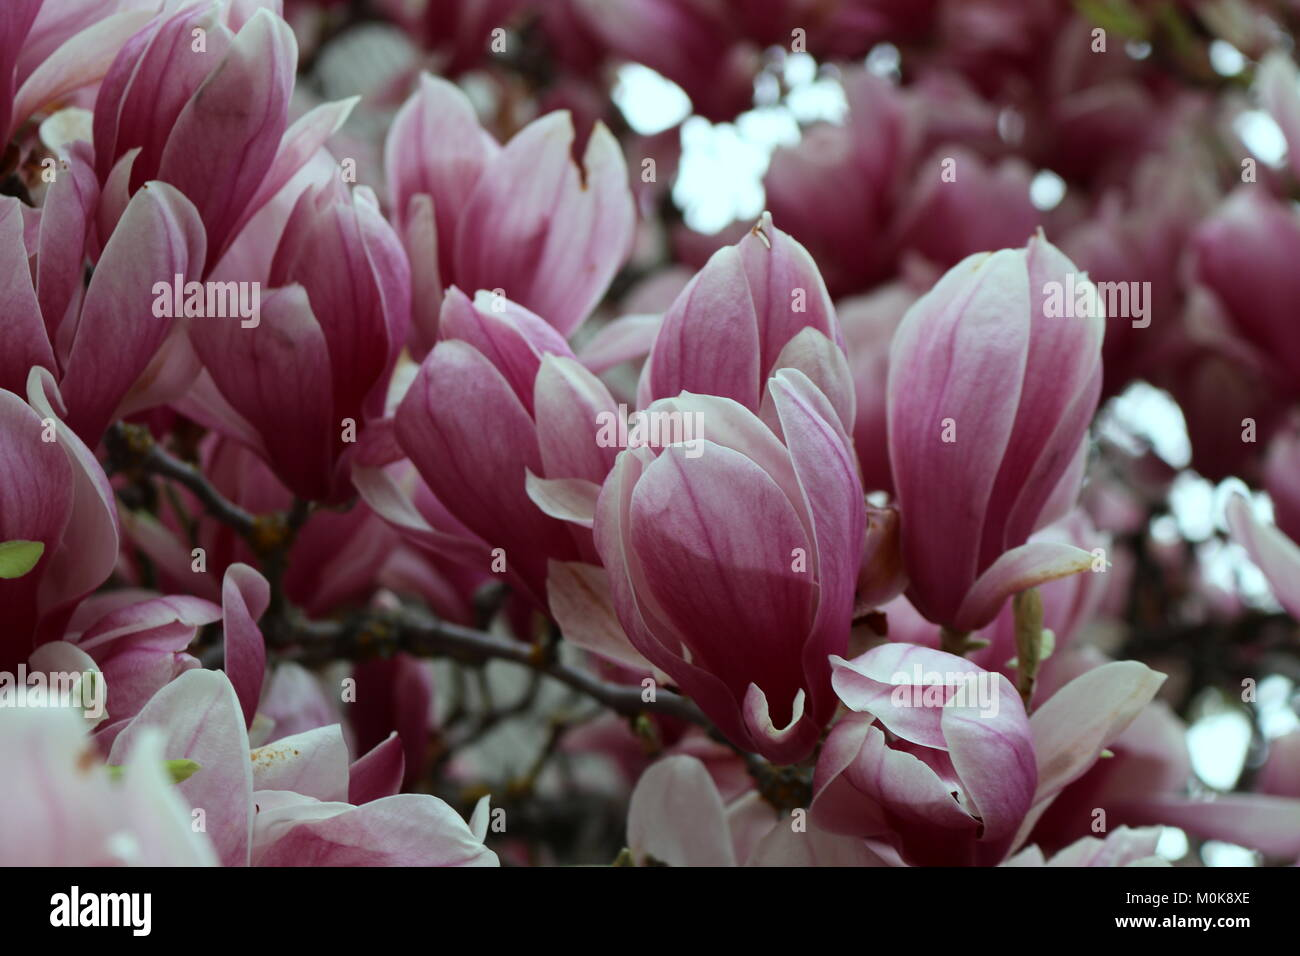 Pink Tulip Tree Blossoms Stock Photo 172527782 Alamy